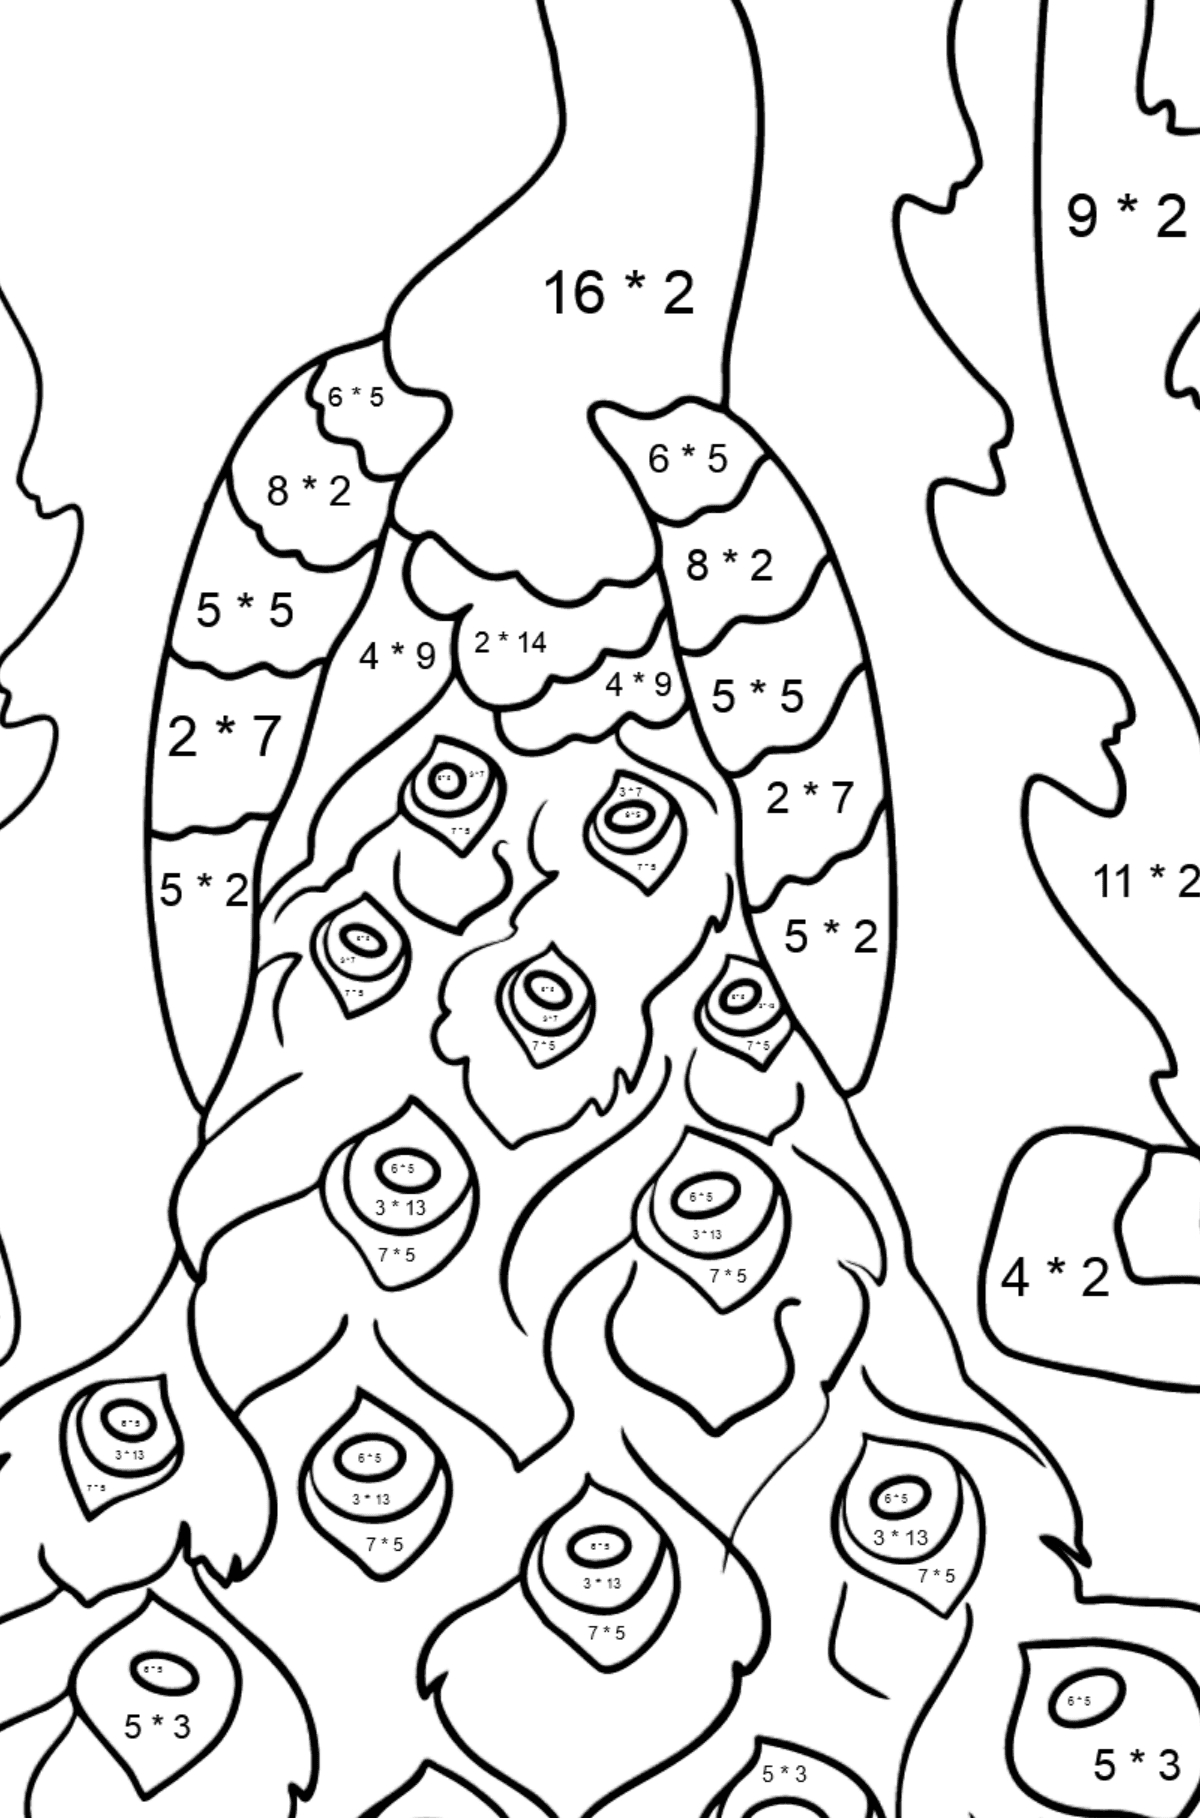 A Peacock Coloring Page - Math Coloring - Multiplication for Kids